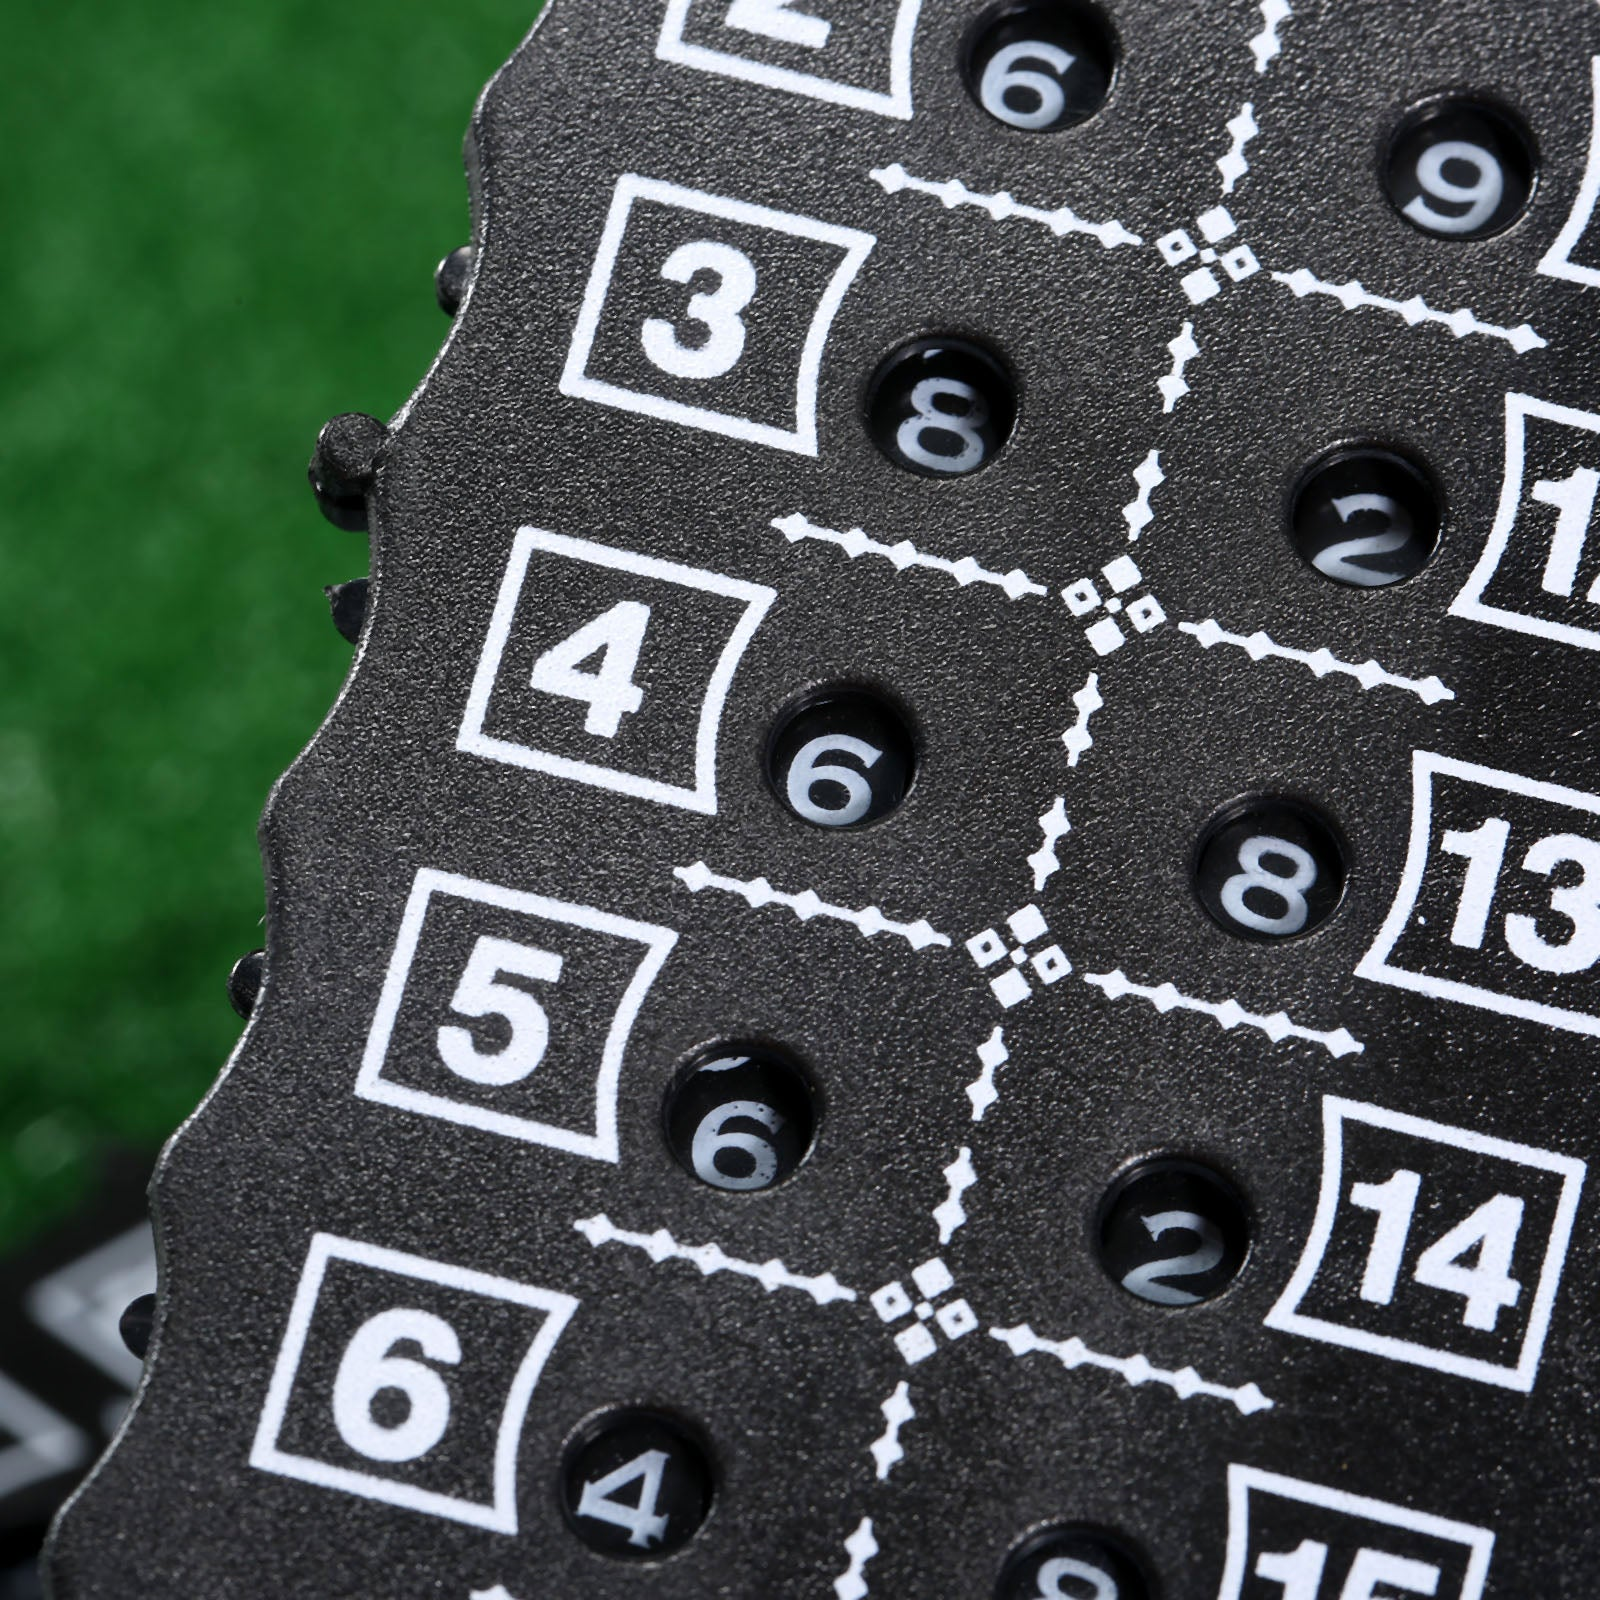 GOLF SCORE COUNTER CARD - THE GOLFER'S PICK